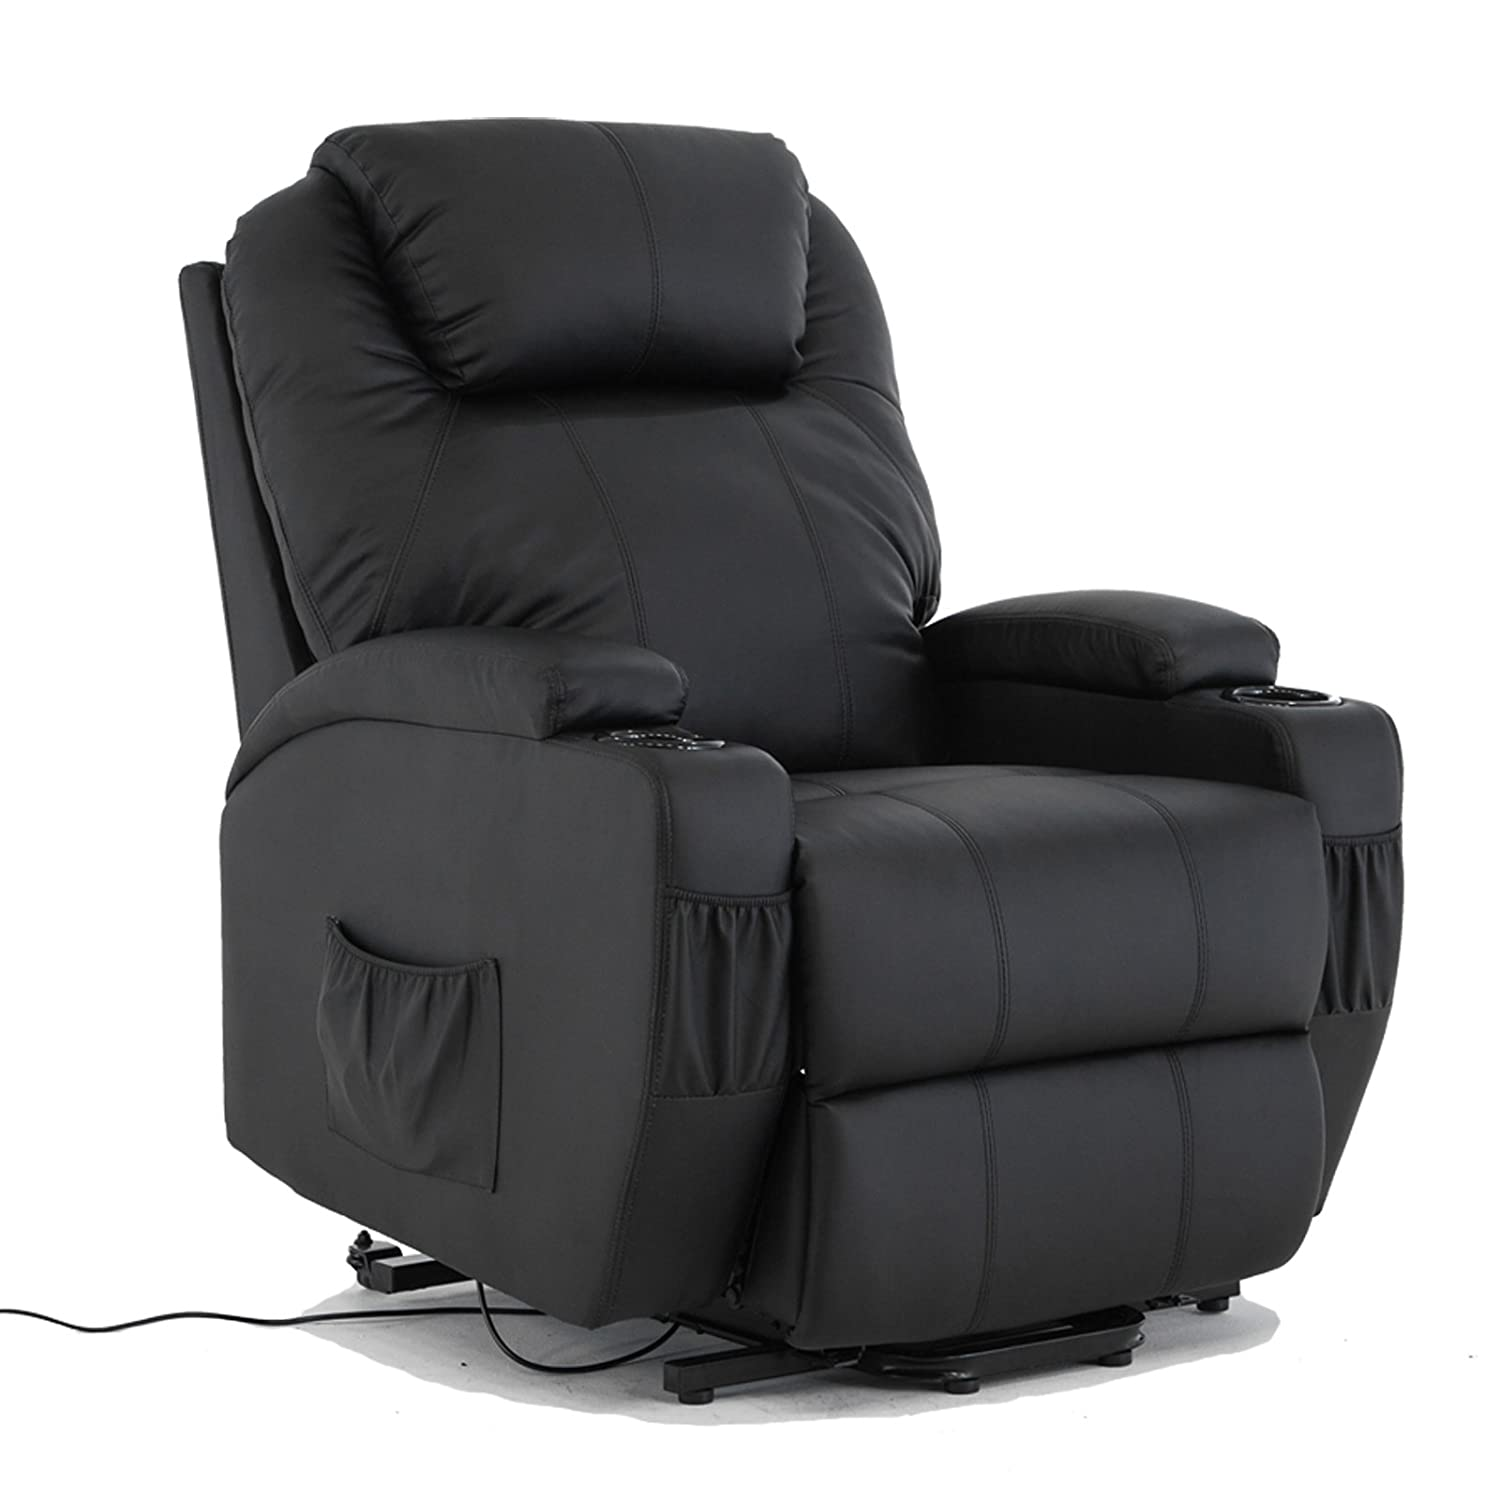 Amazon.com Power Lift Real Leather Recliner chair Wall Hugger Lounge Seat Black Kitchen u0026 Dining  sc 1 st  Amazon.com & Amazon.com: Power Lift Real Leather Recliner chair Wall Hugger ... islam-shia.org